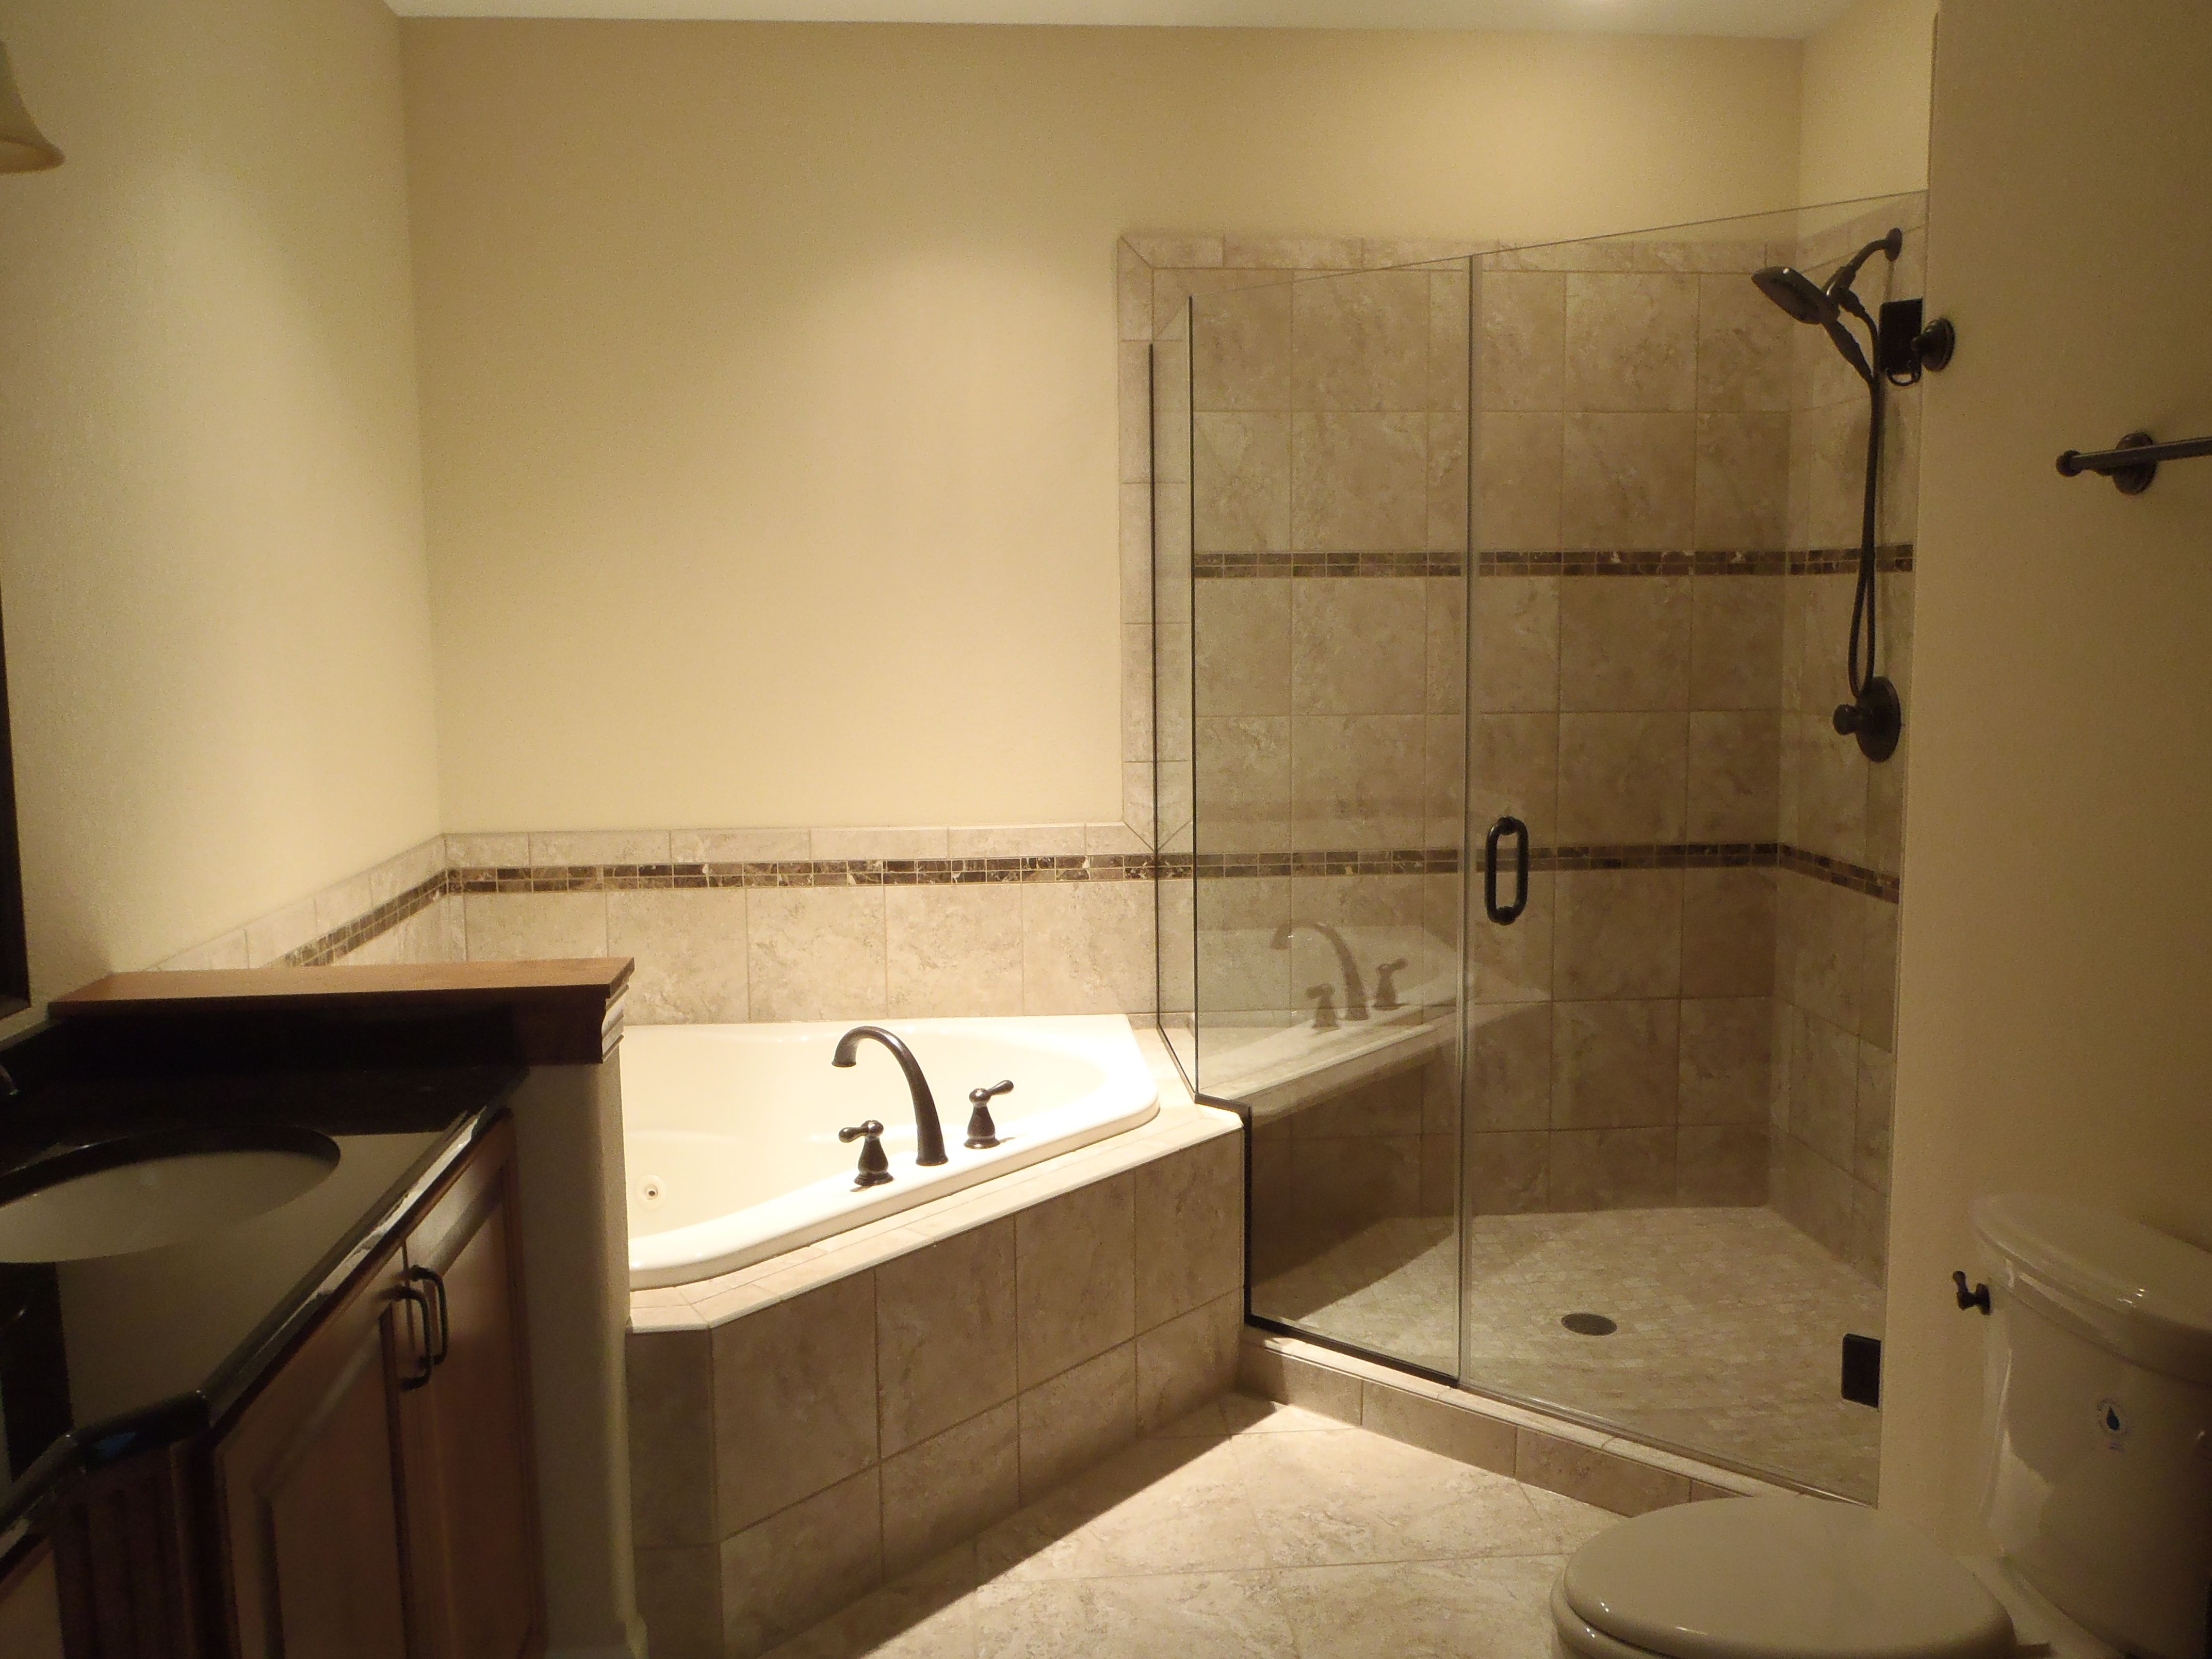 Using light tile and enclosing your shower in glass can make your bathroom feel larger. For more information visit www.carstensenhomes.com